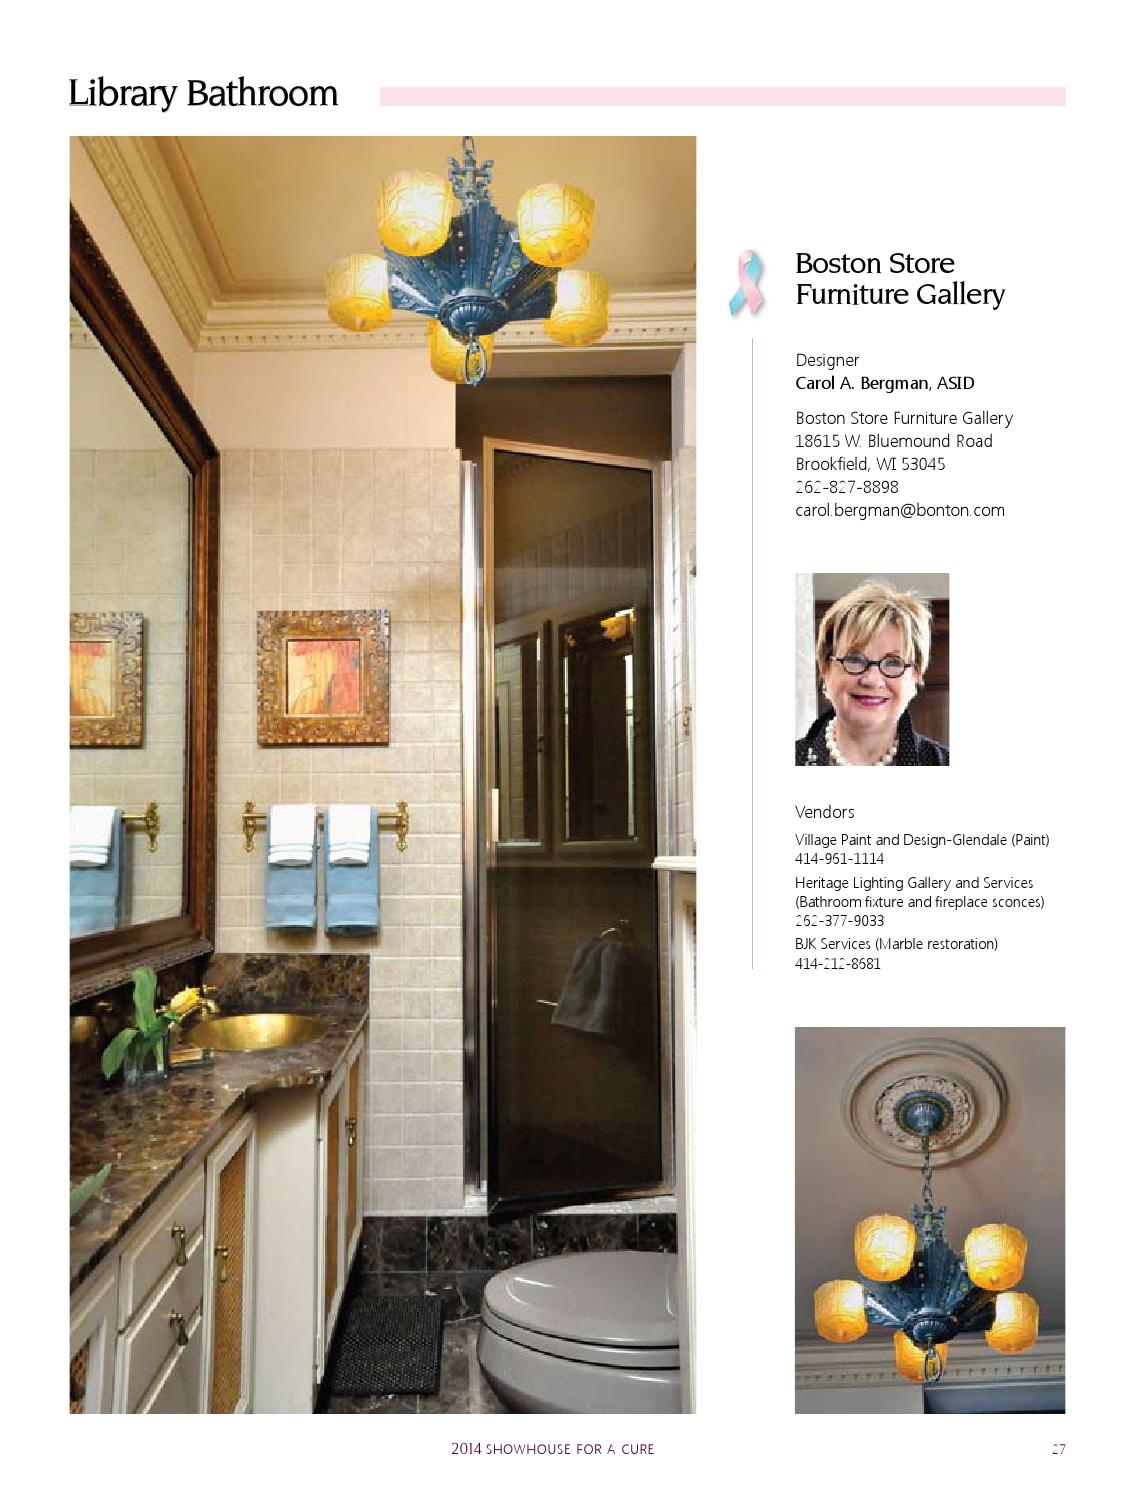 2014 Wisconsin Breast Cancer Showhouse For A Cure By Lifestyle Publishing    Issuu